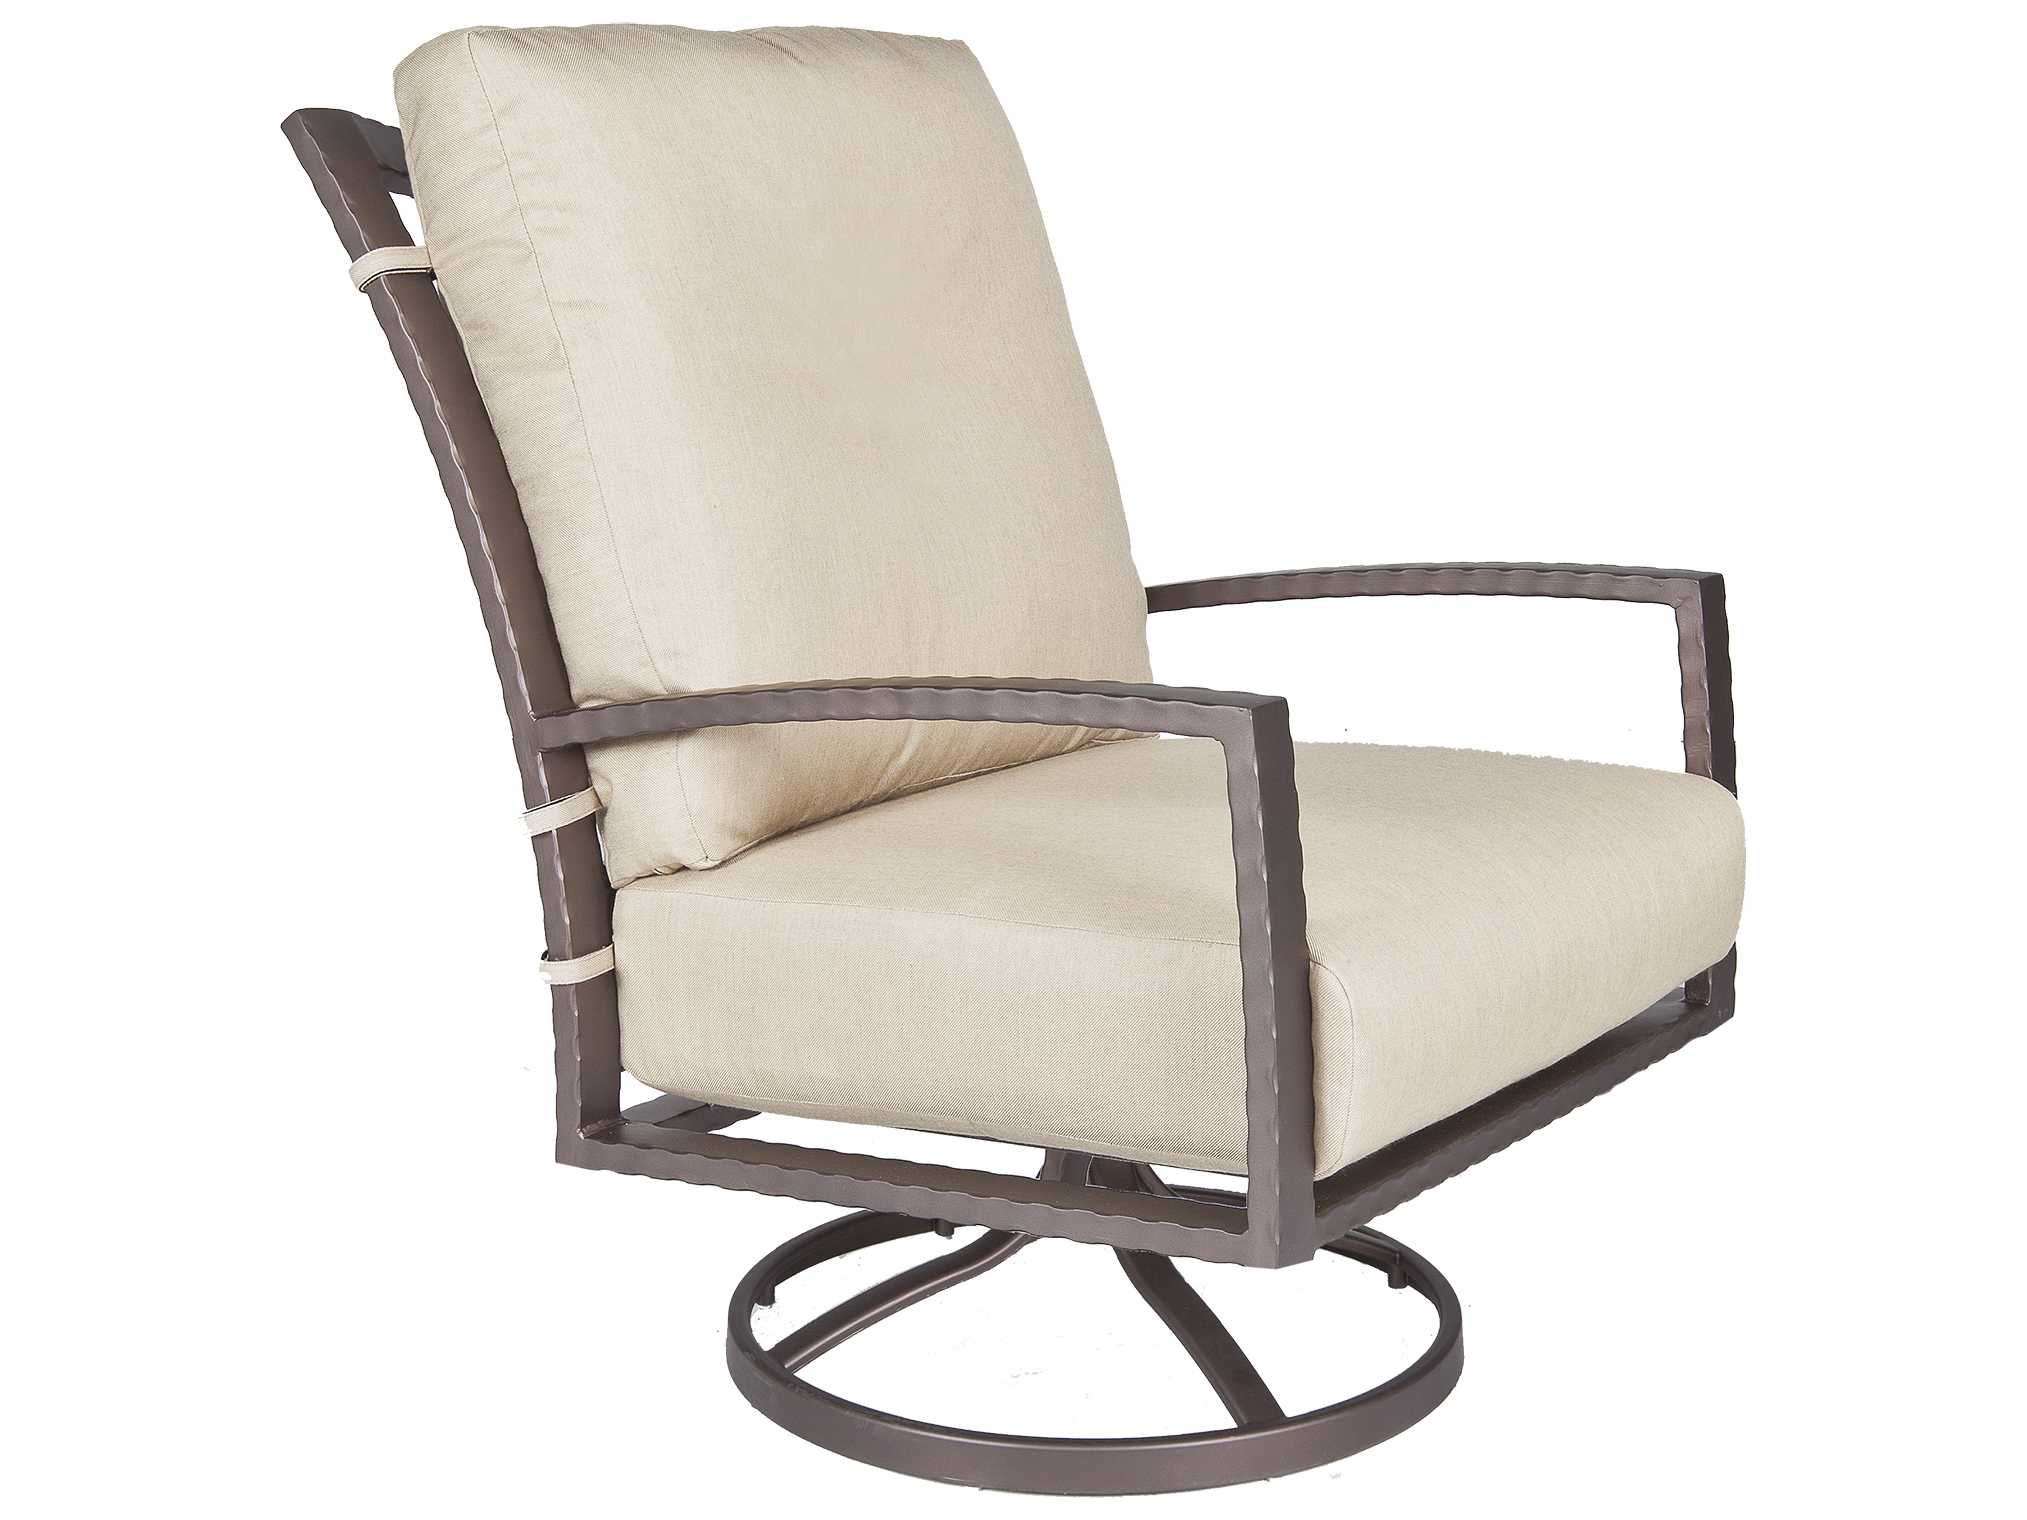 OW Lee Sol Wrought Iron Swivel Rocker Lounge Chair